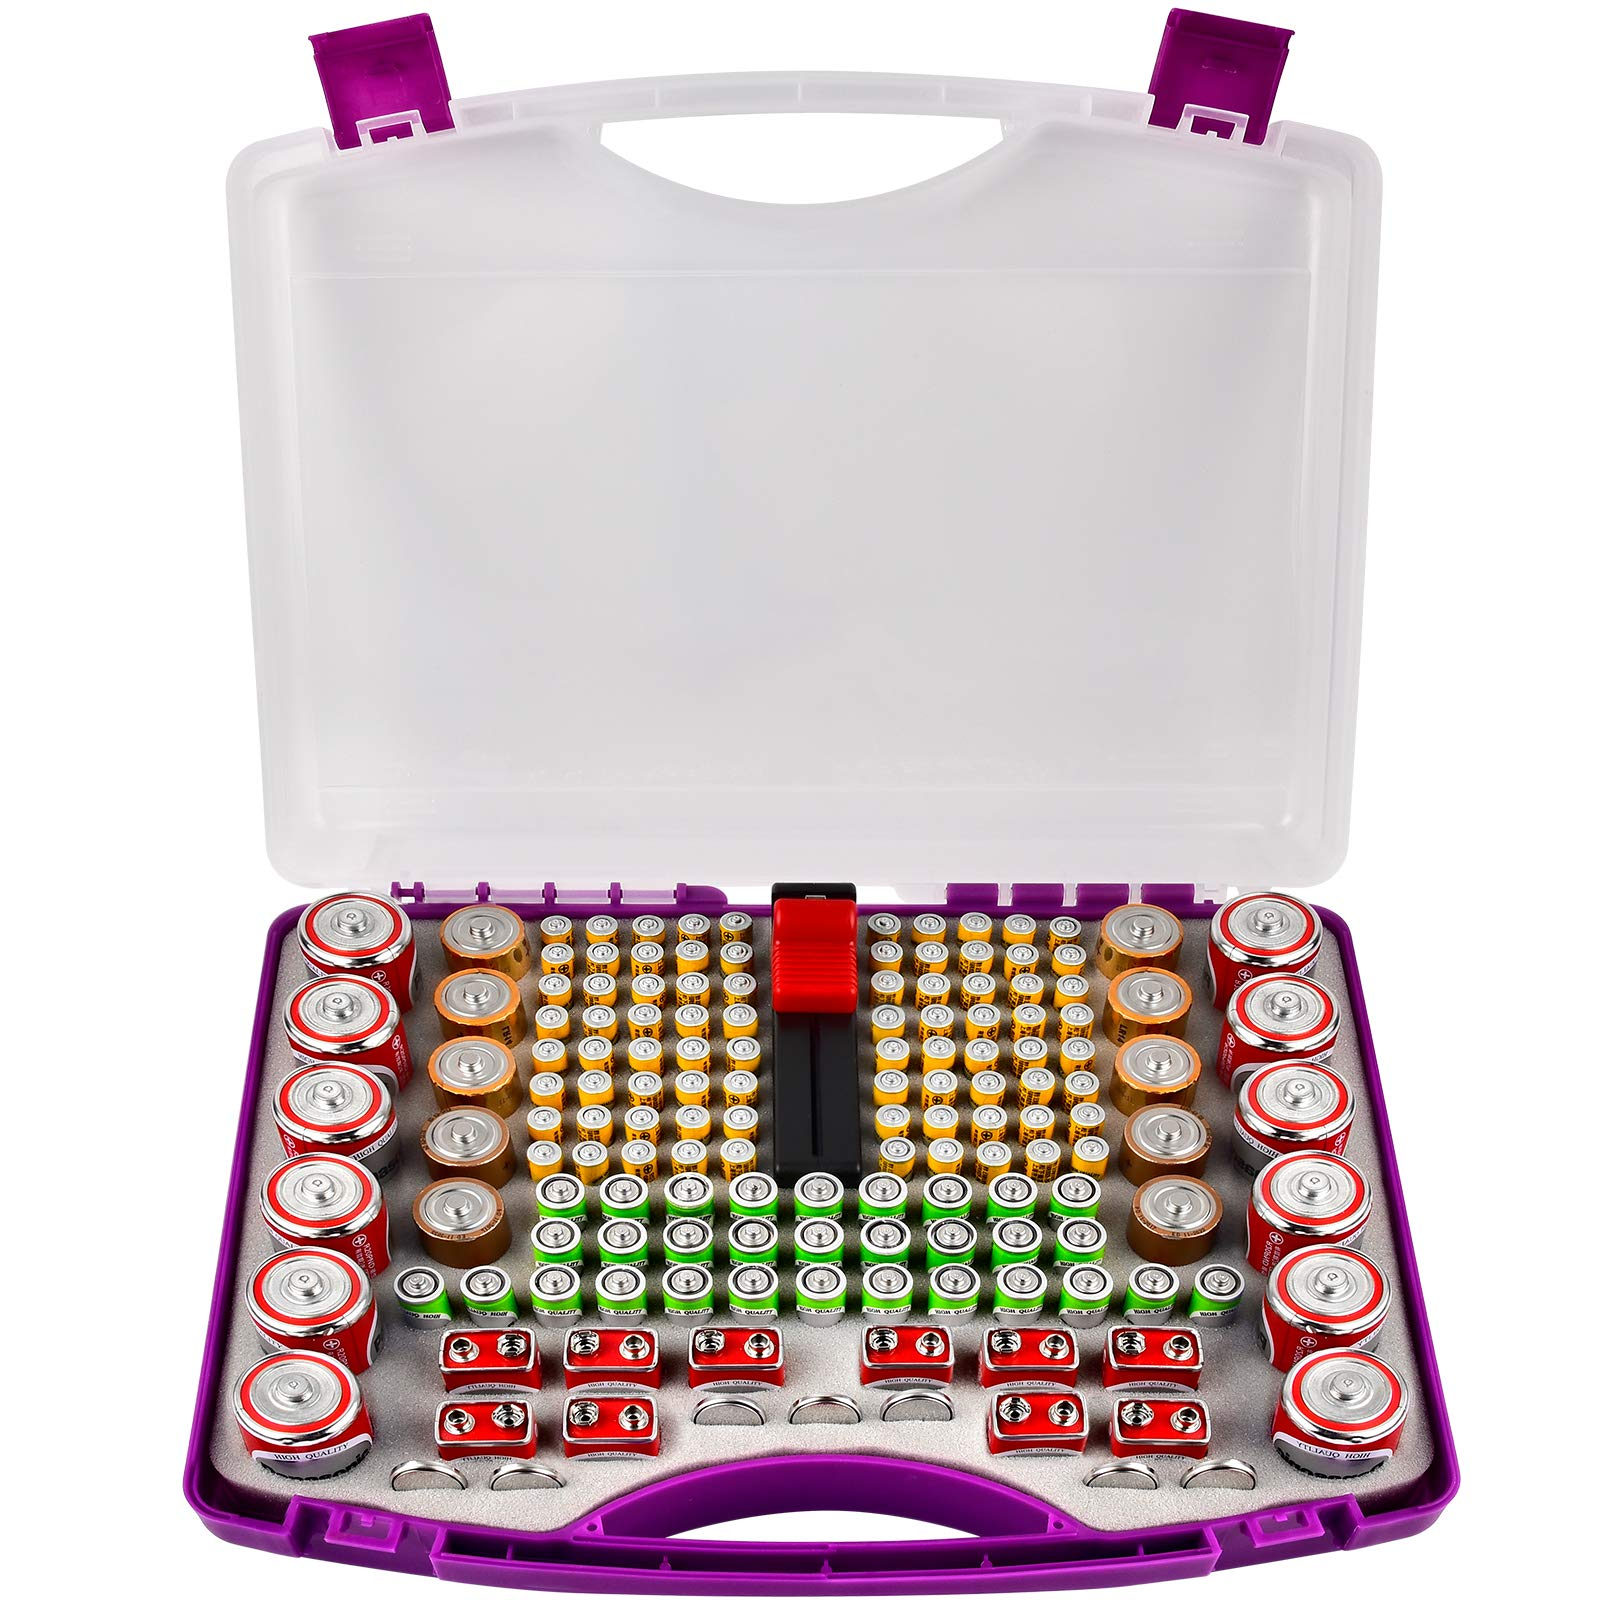 Battery Storage Organizer Case Holder with Battery Tester, Battery Garage Container Fits for 180+ AA AAA 9V C D Lithium 3V A23 CR 2032, CR 2016, CR 1632, CR 2025 and 1.5V Button Coin Cell-Purple